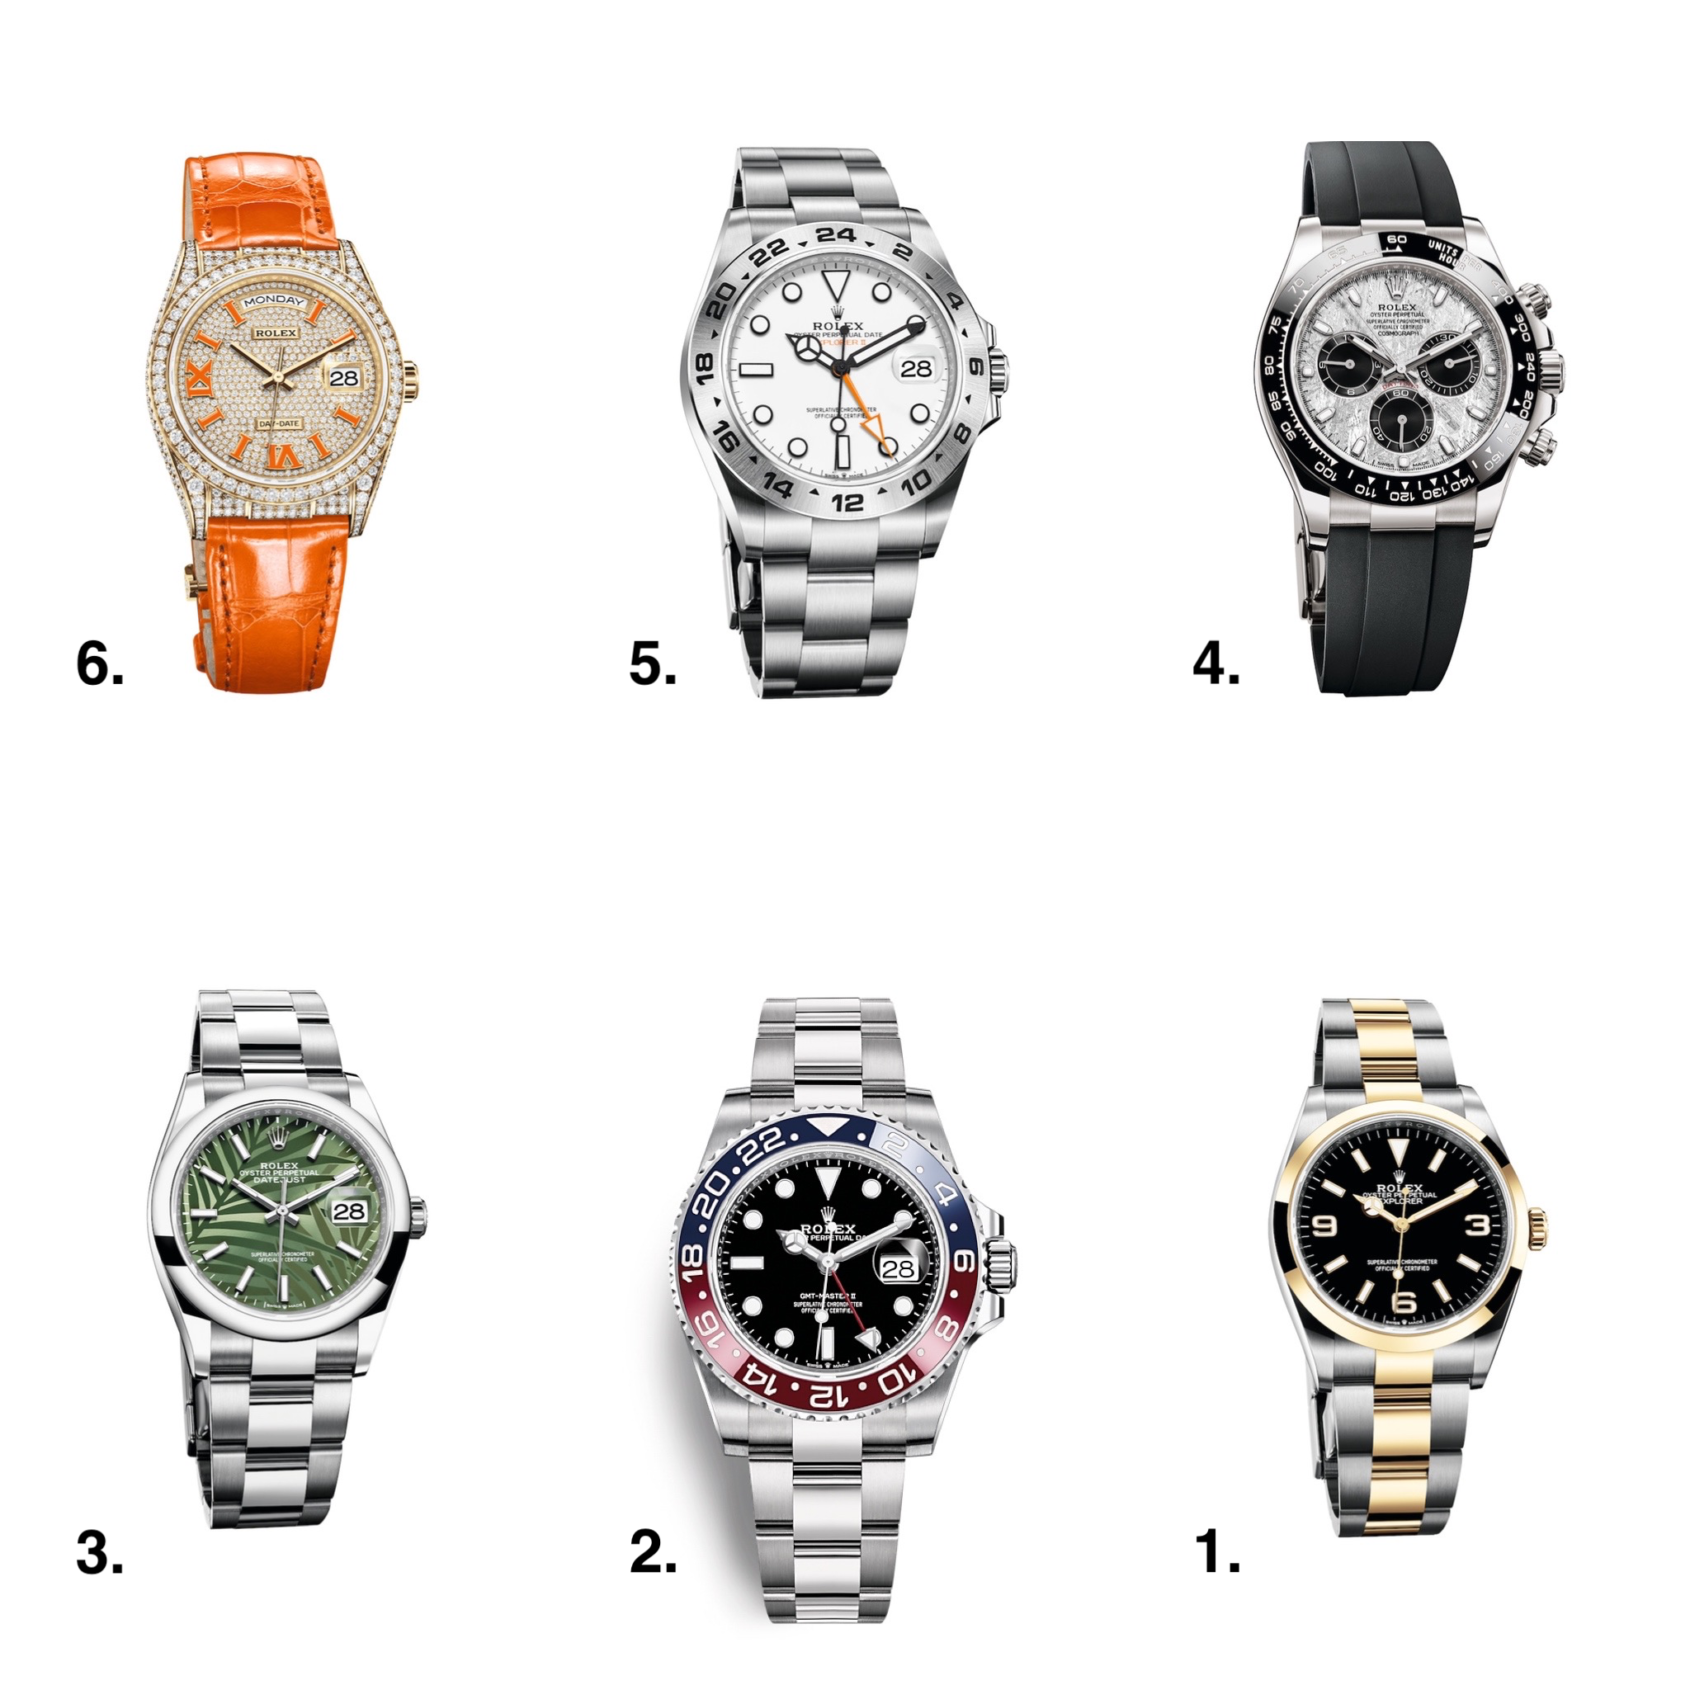 The 2021 Rolex Collection ranked from least to most surprising